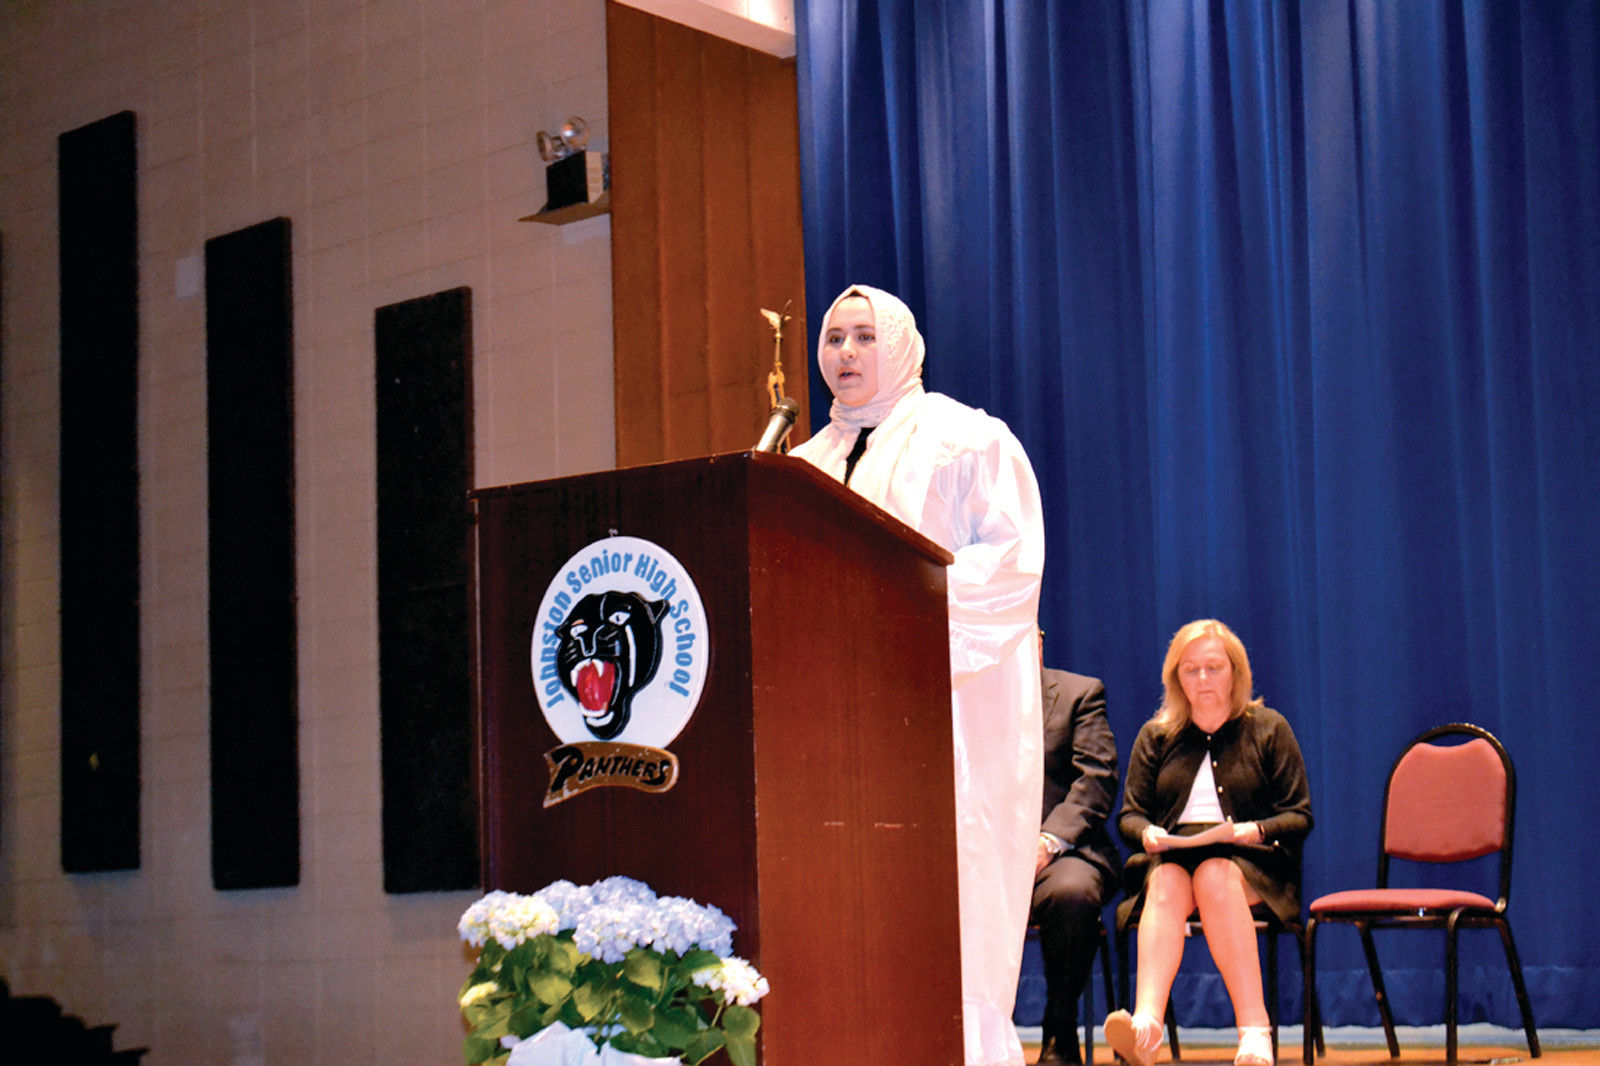 SAYING GOODBYE: Outgoing NHS senior president Nour Abaherah told inductees that she will remember making a difference by being a part of the organization.